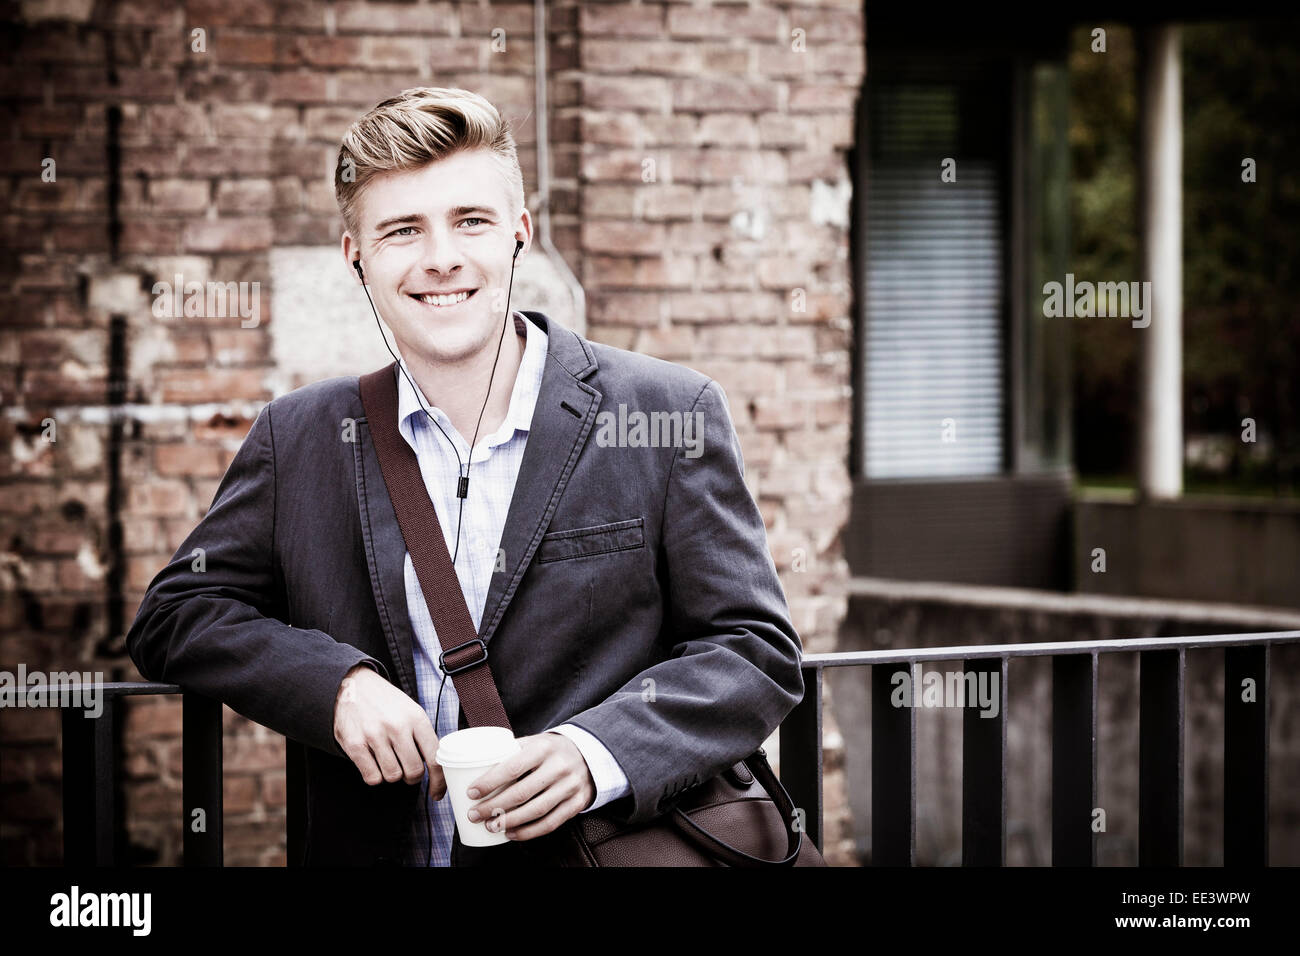 Young businessman with headphones and coffee cup, Munich, Bavaria, Germany - Stock Image